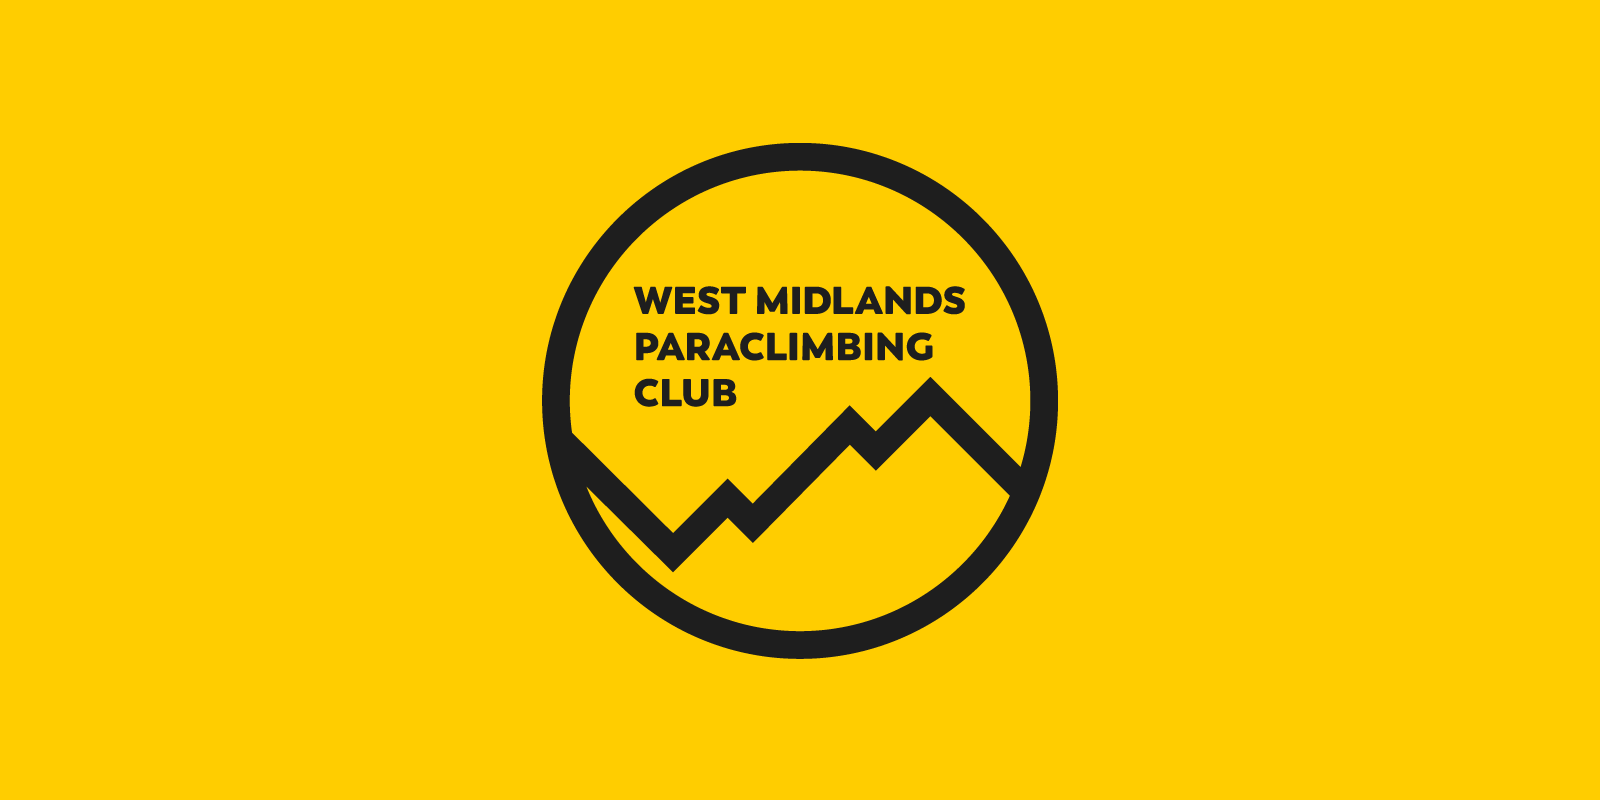 logo design for west midlands paraclimbing club oliver cowan graphic design freelance